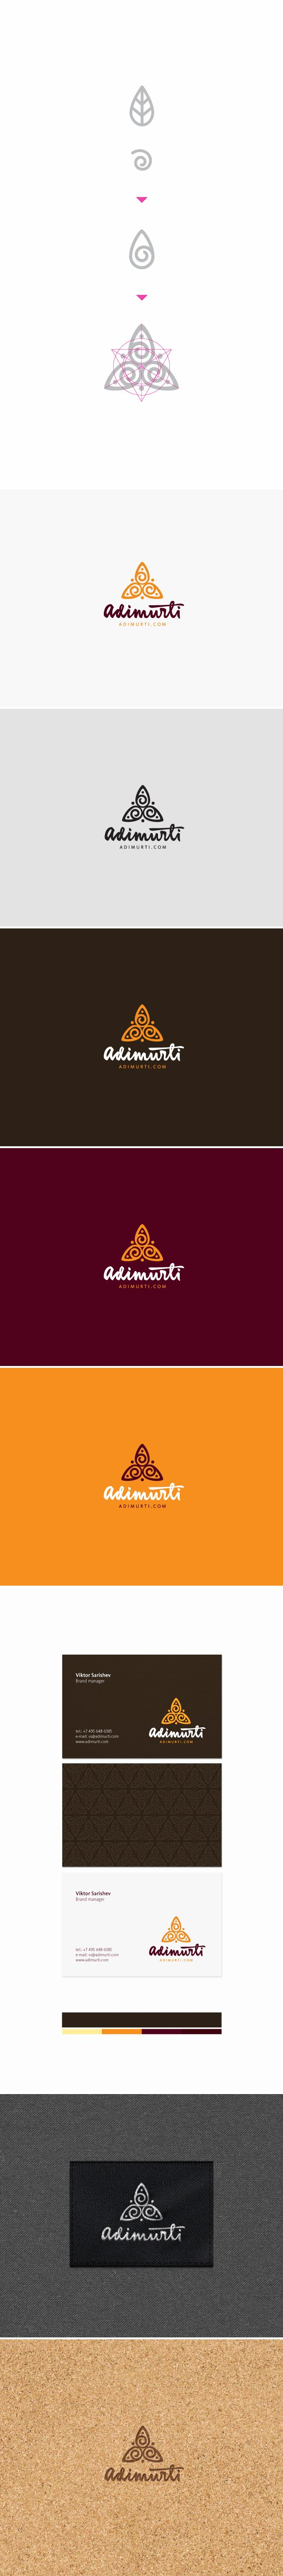 Adimurti on Behance                                                                                                                                                                                 More